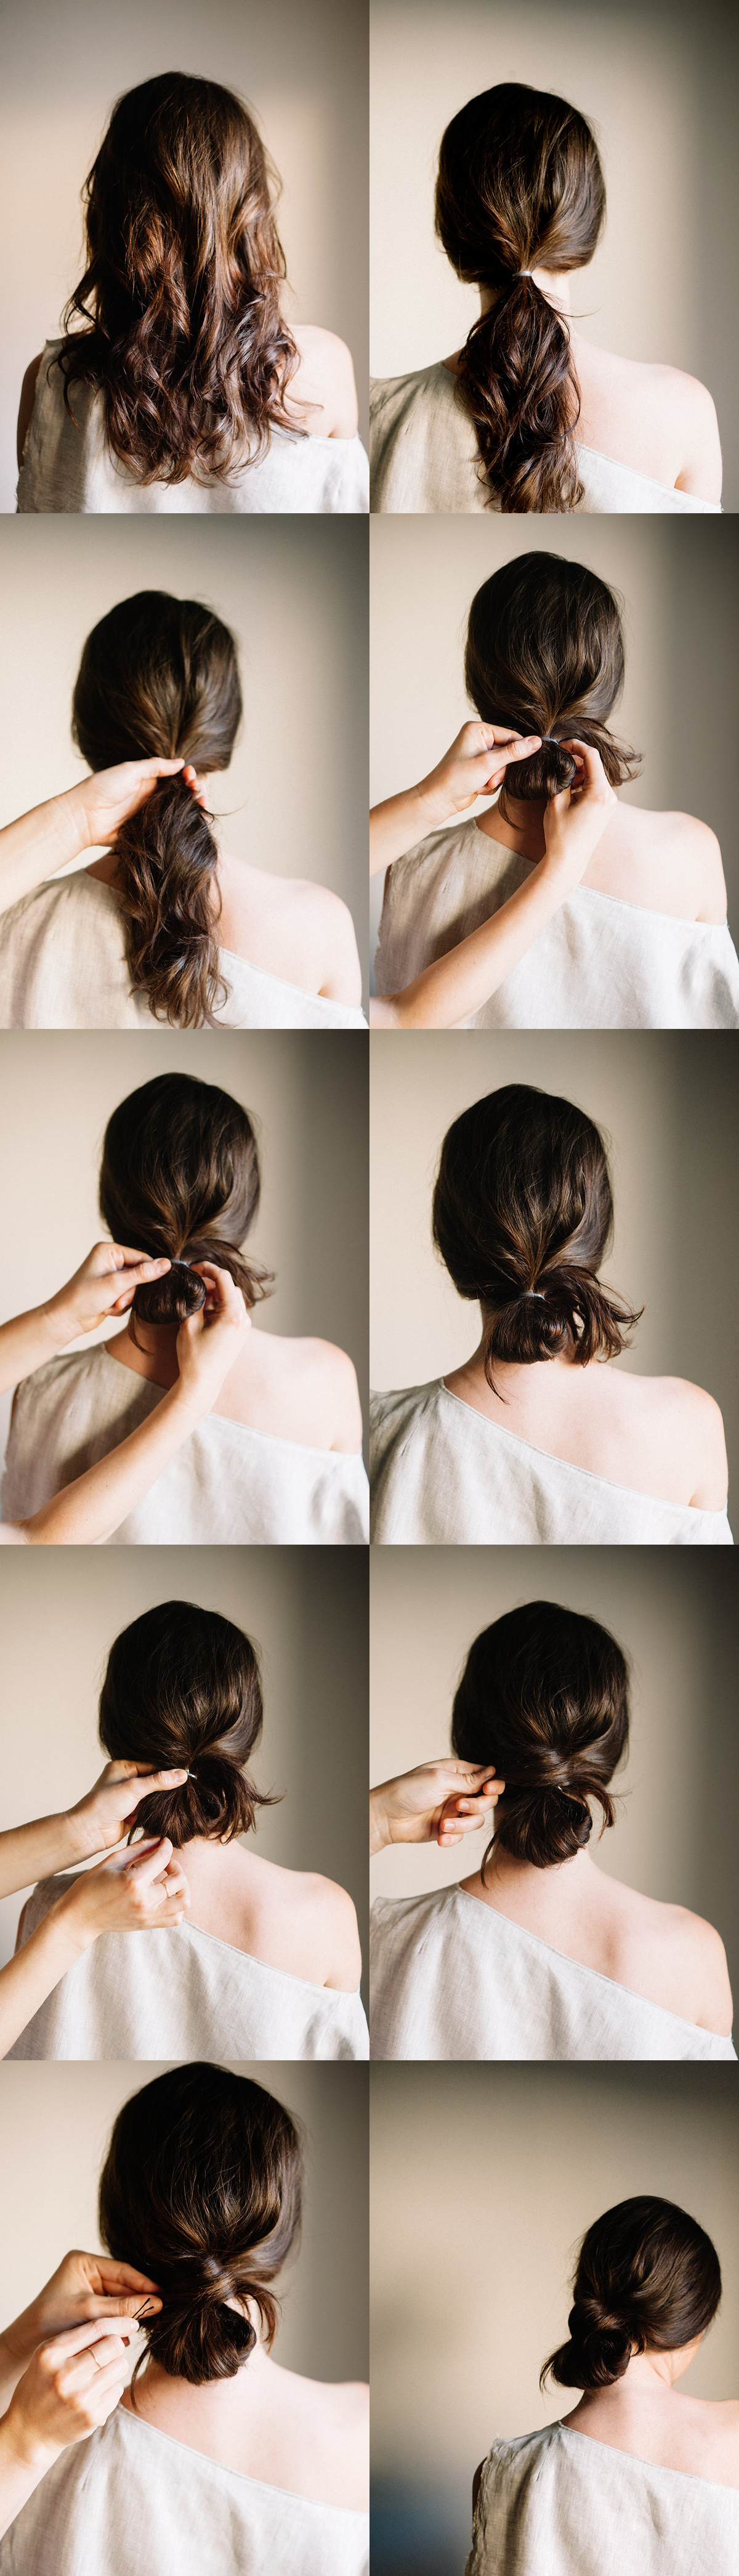 diy-low-knot-wedding-hairstyles-for-long-hair